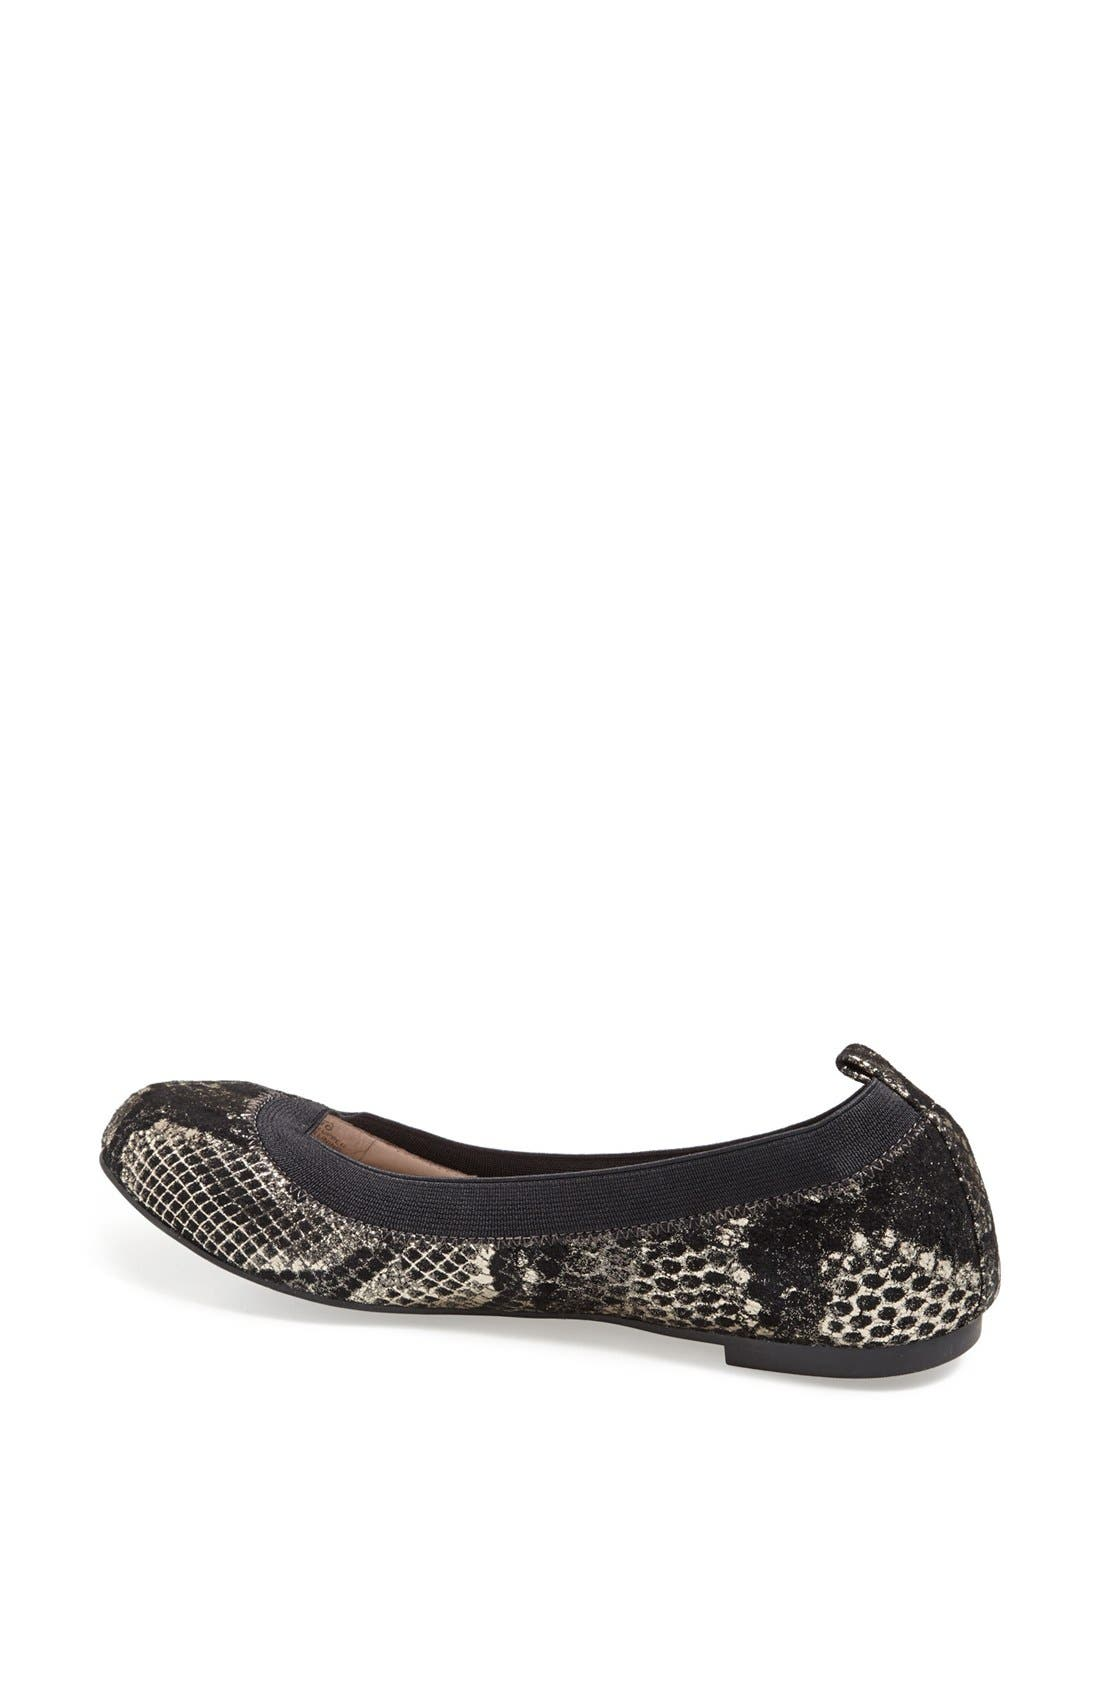 Alternate Image 2  - Vince Camuto 'Jorra' Leather Flat